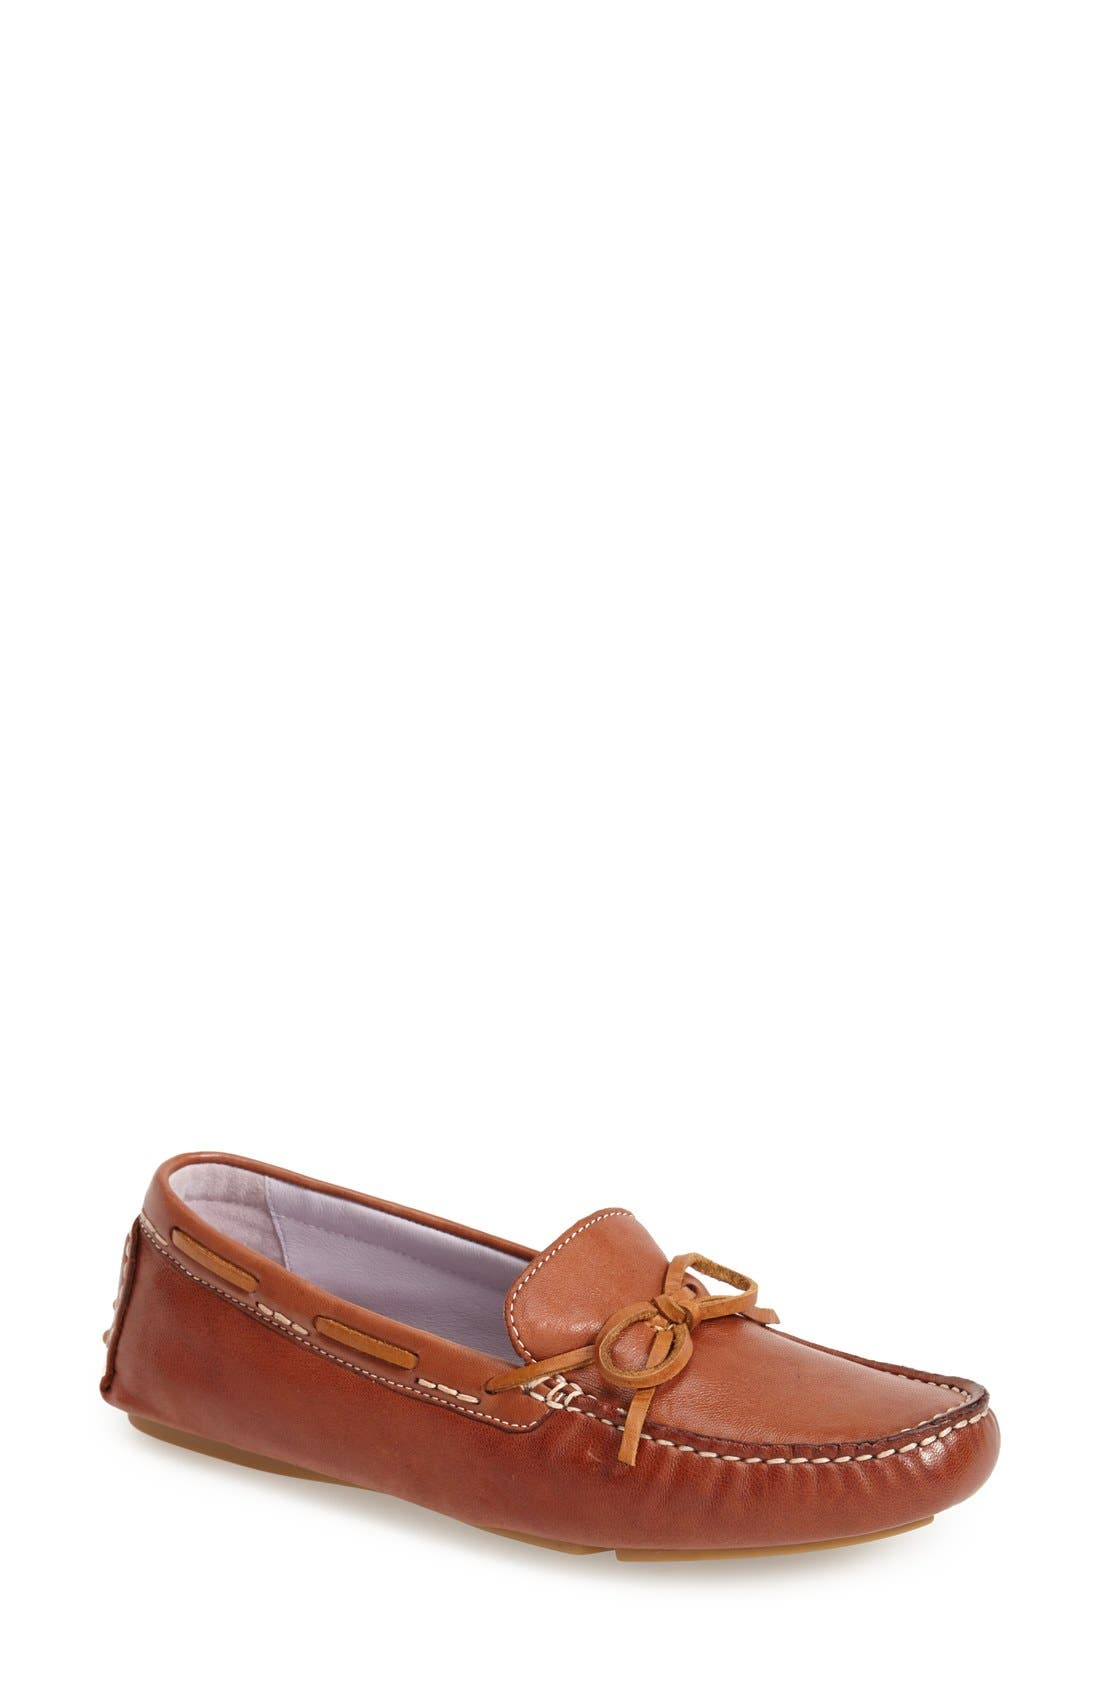 'Maggie' Moccasin,                         Main,                         color, 741